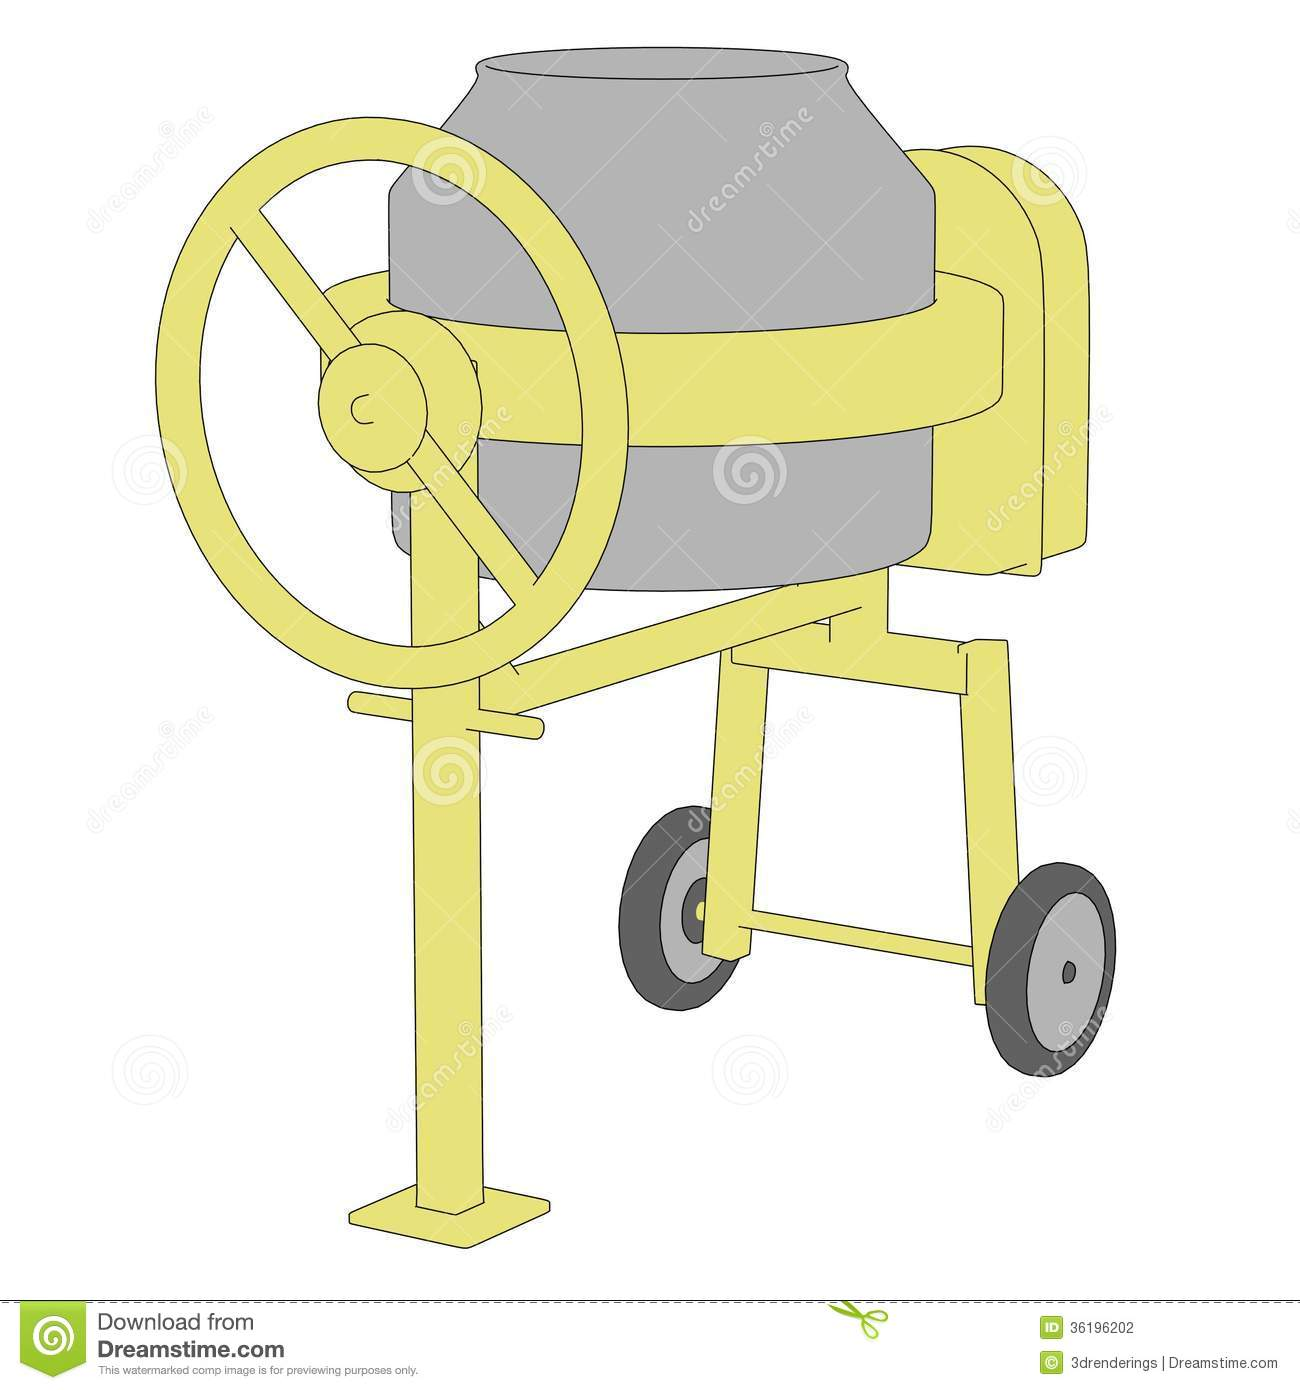 Concrete Mixing Animation : Image of cement mixer stock photography